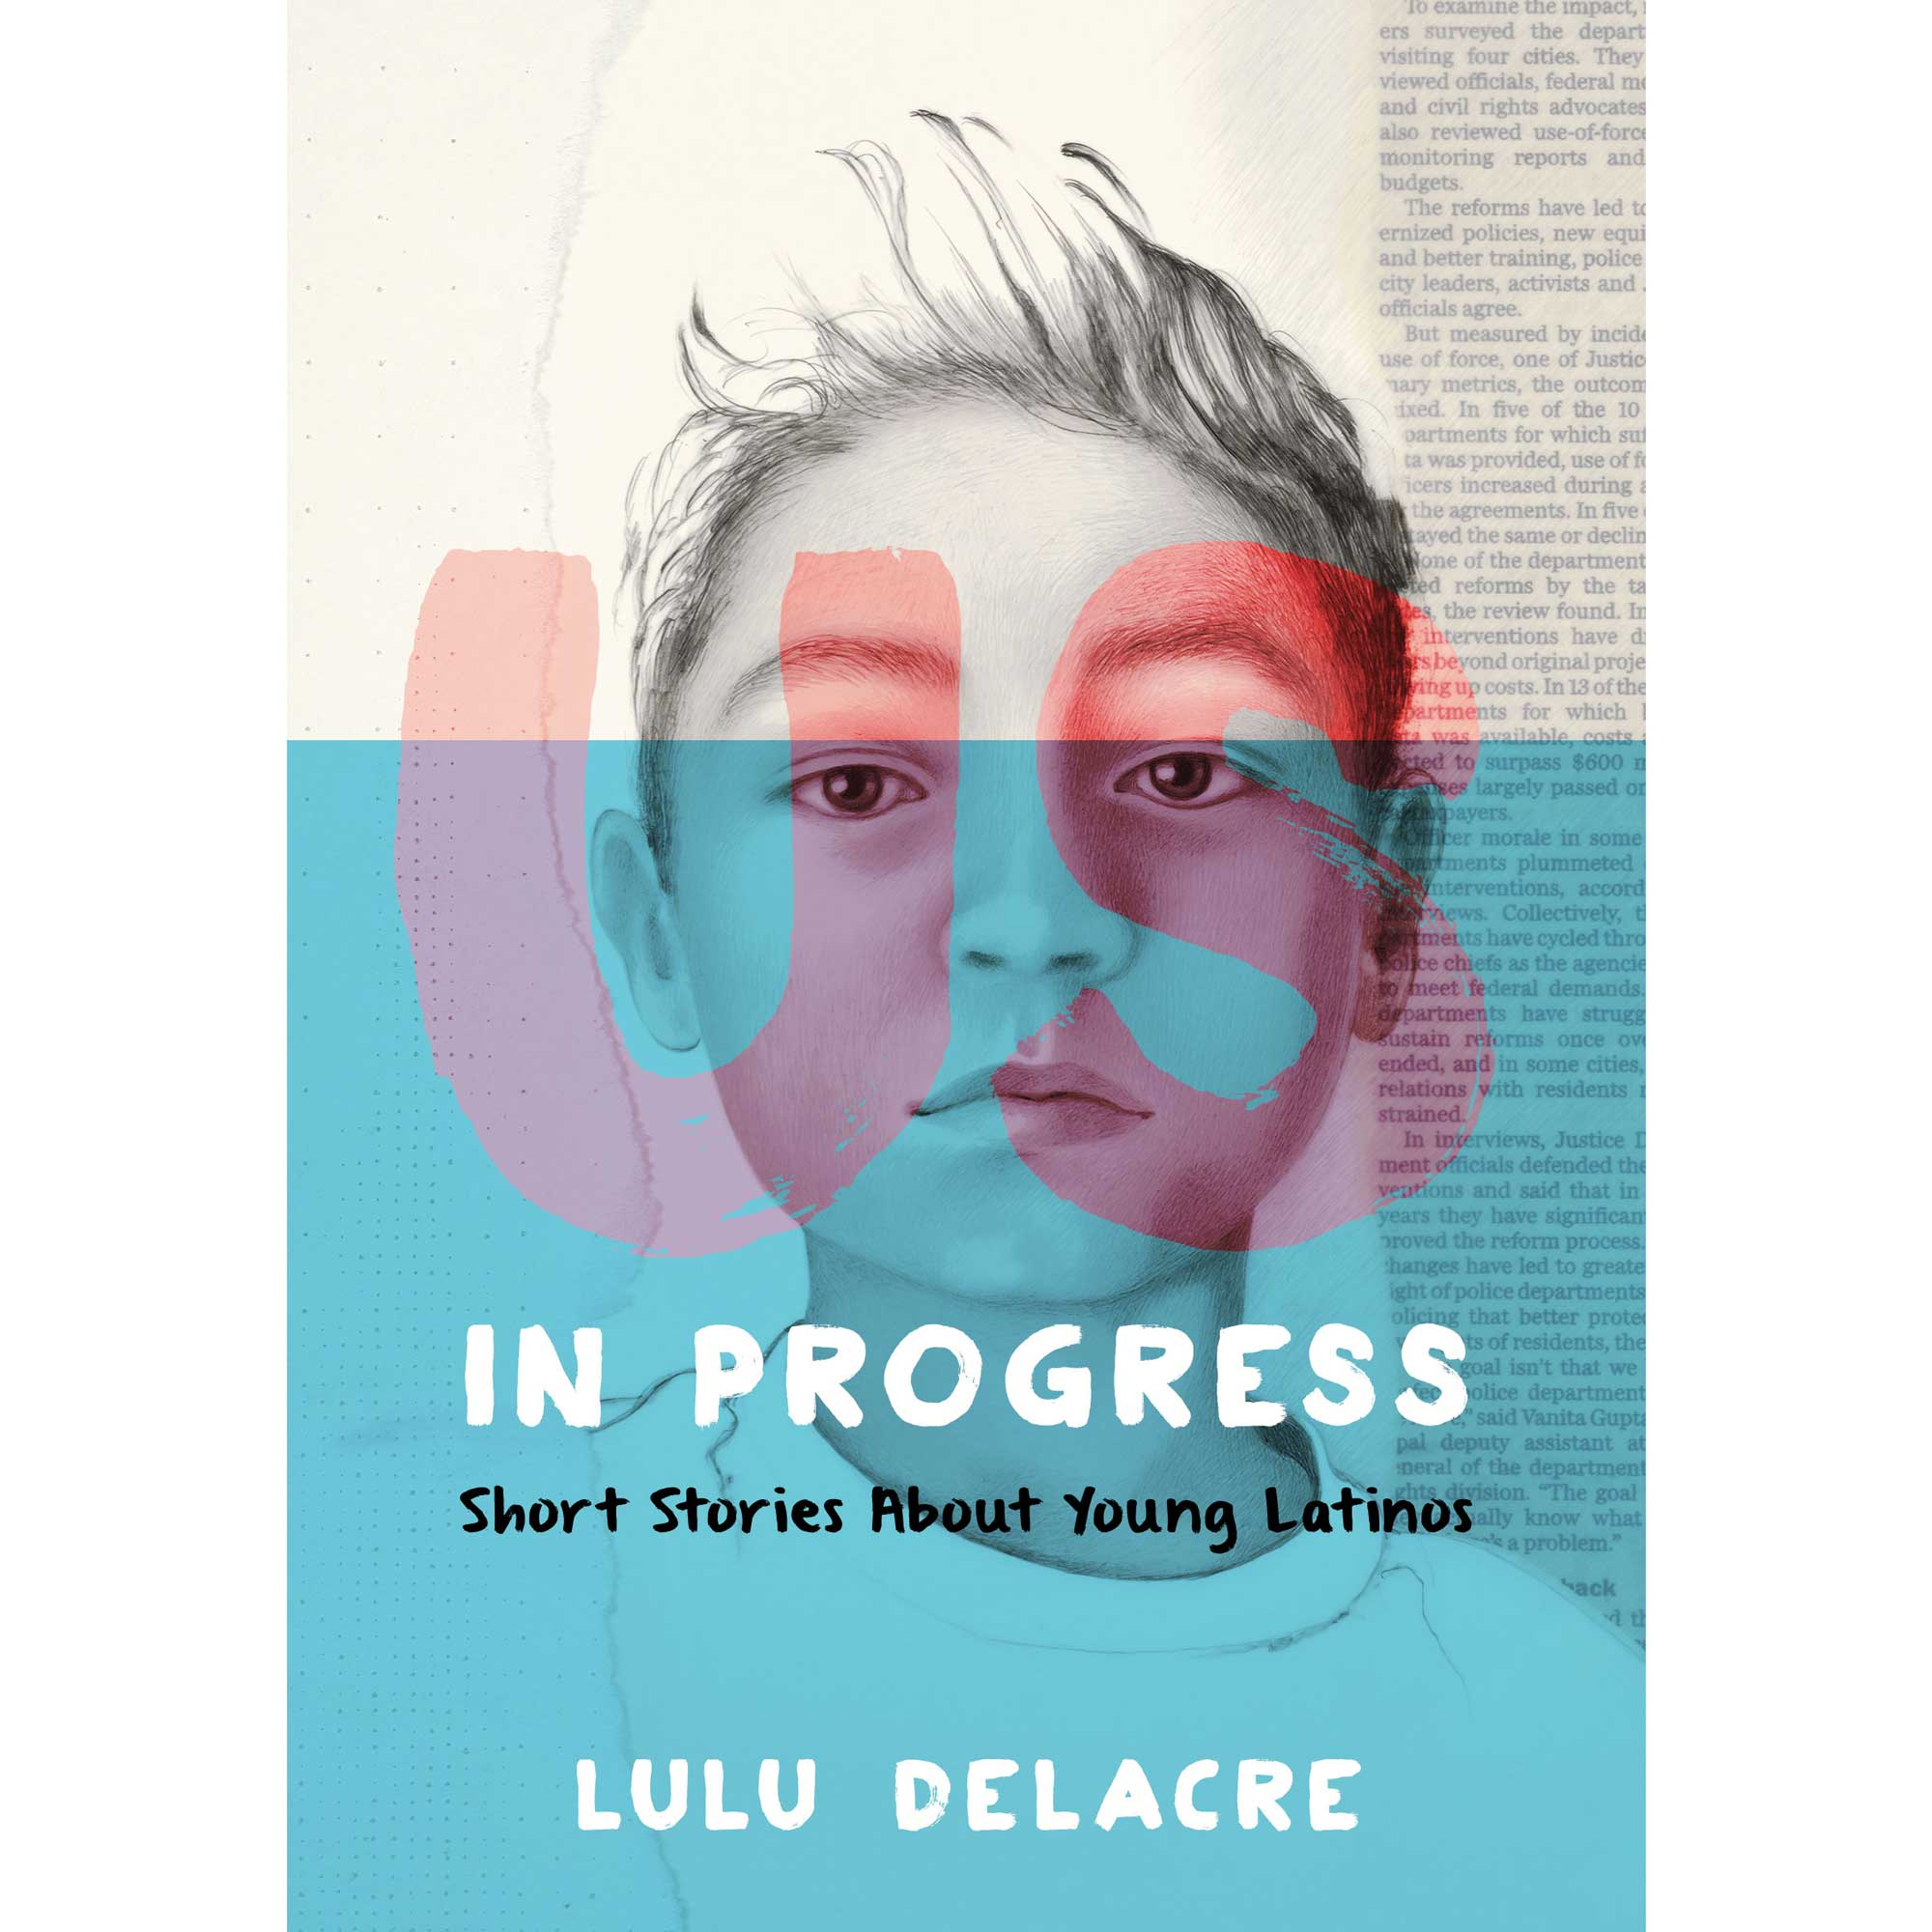 Us, In Progress by Lulu Delacre